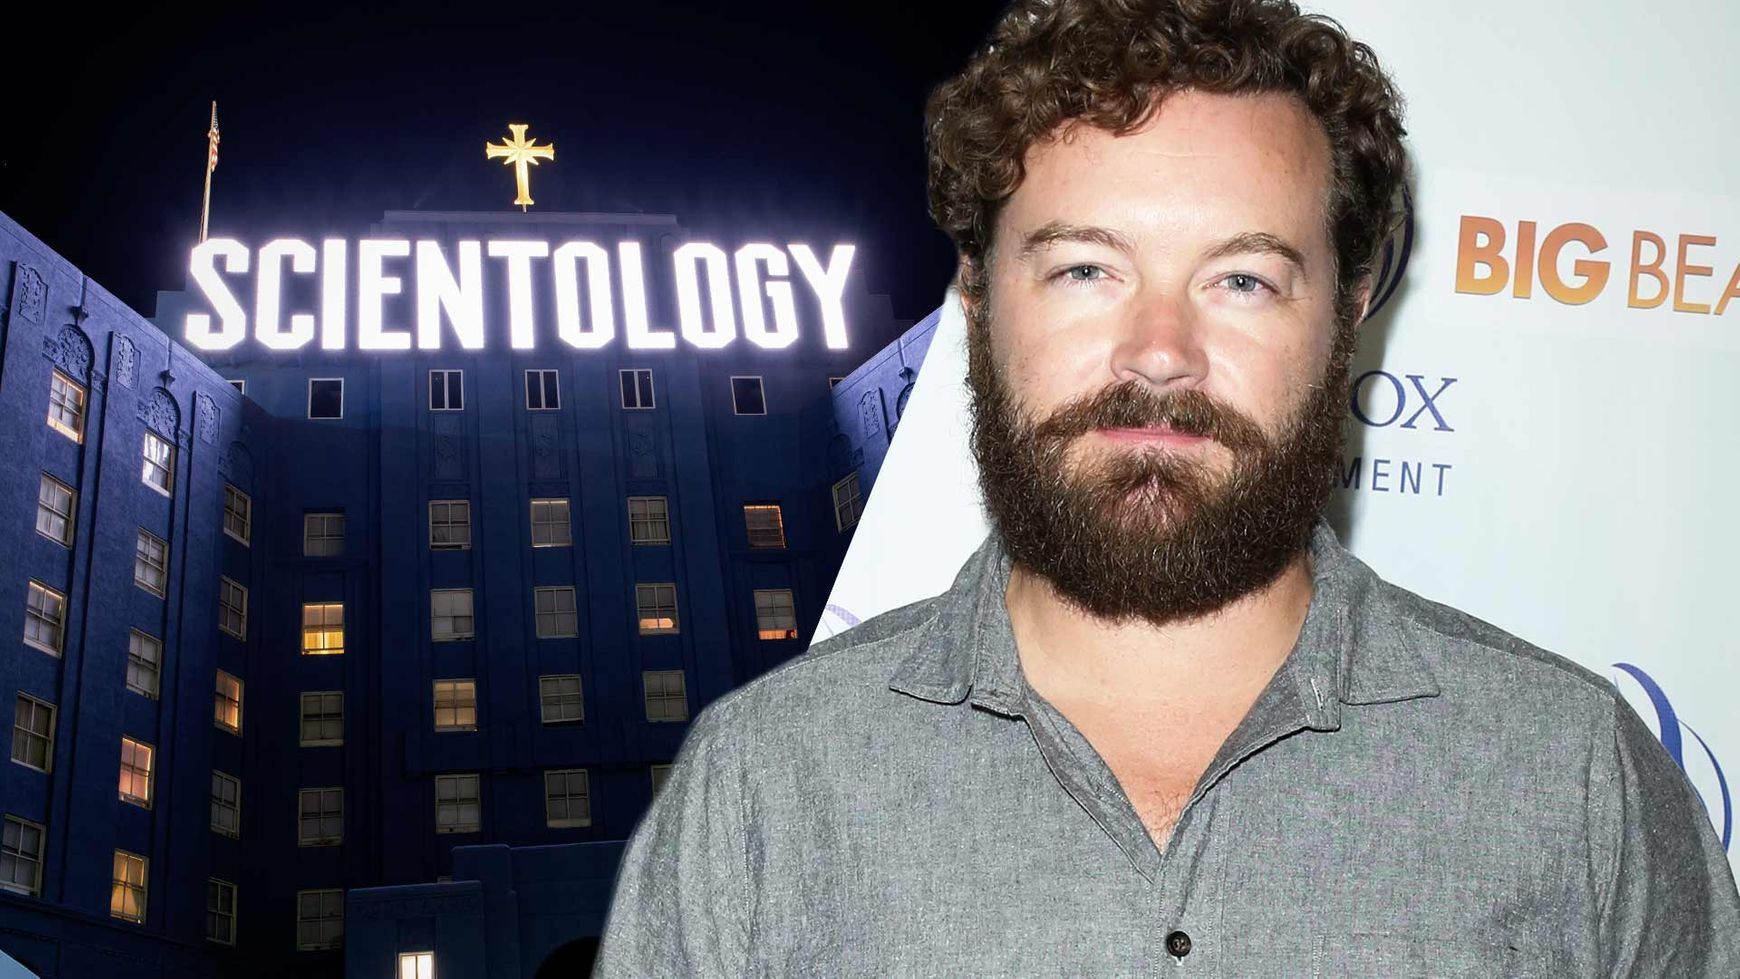 Danny Masterson And The Church Of Scientology Sued For Allegedly Stalking Sexual Assault Accusers